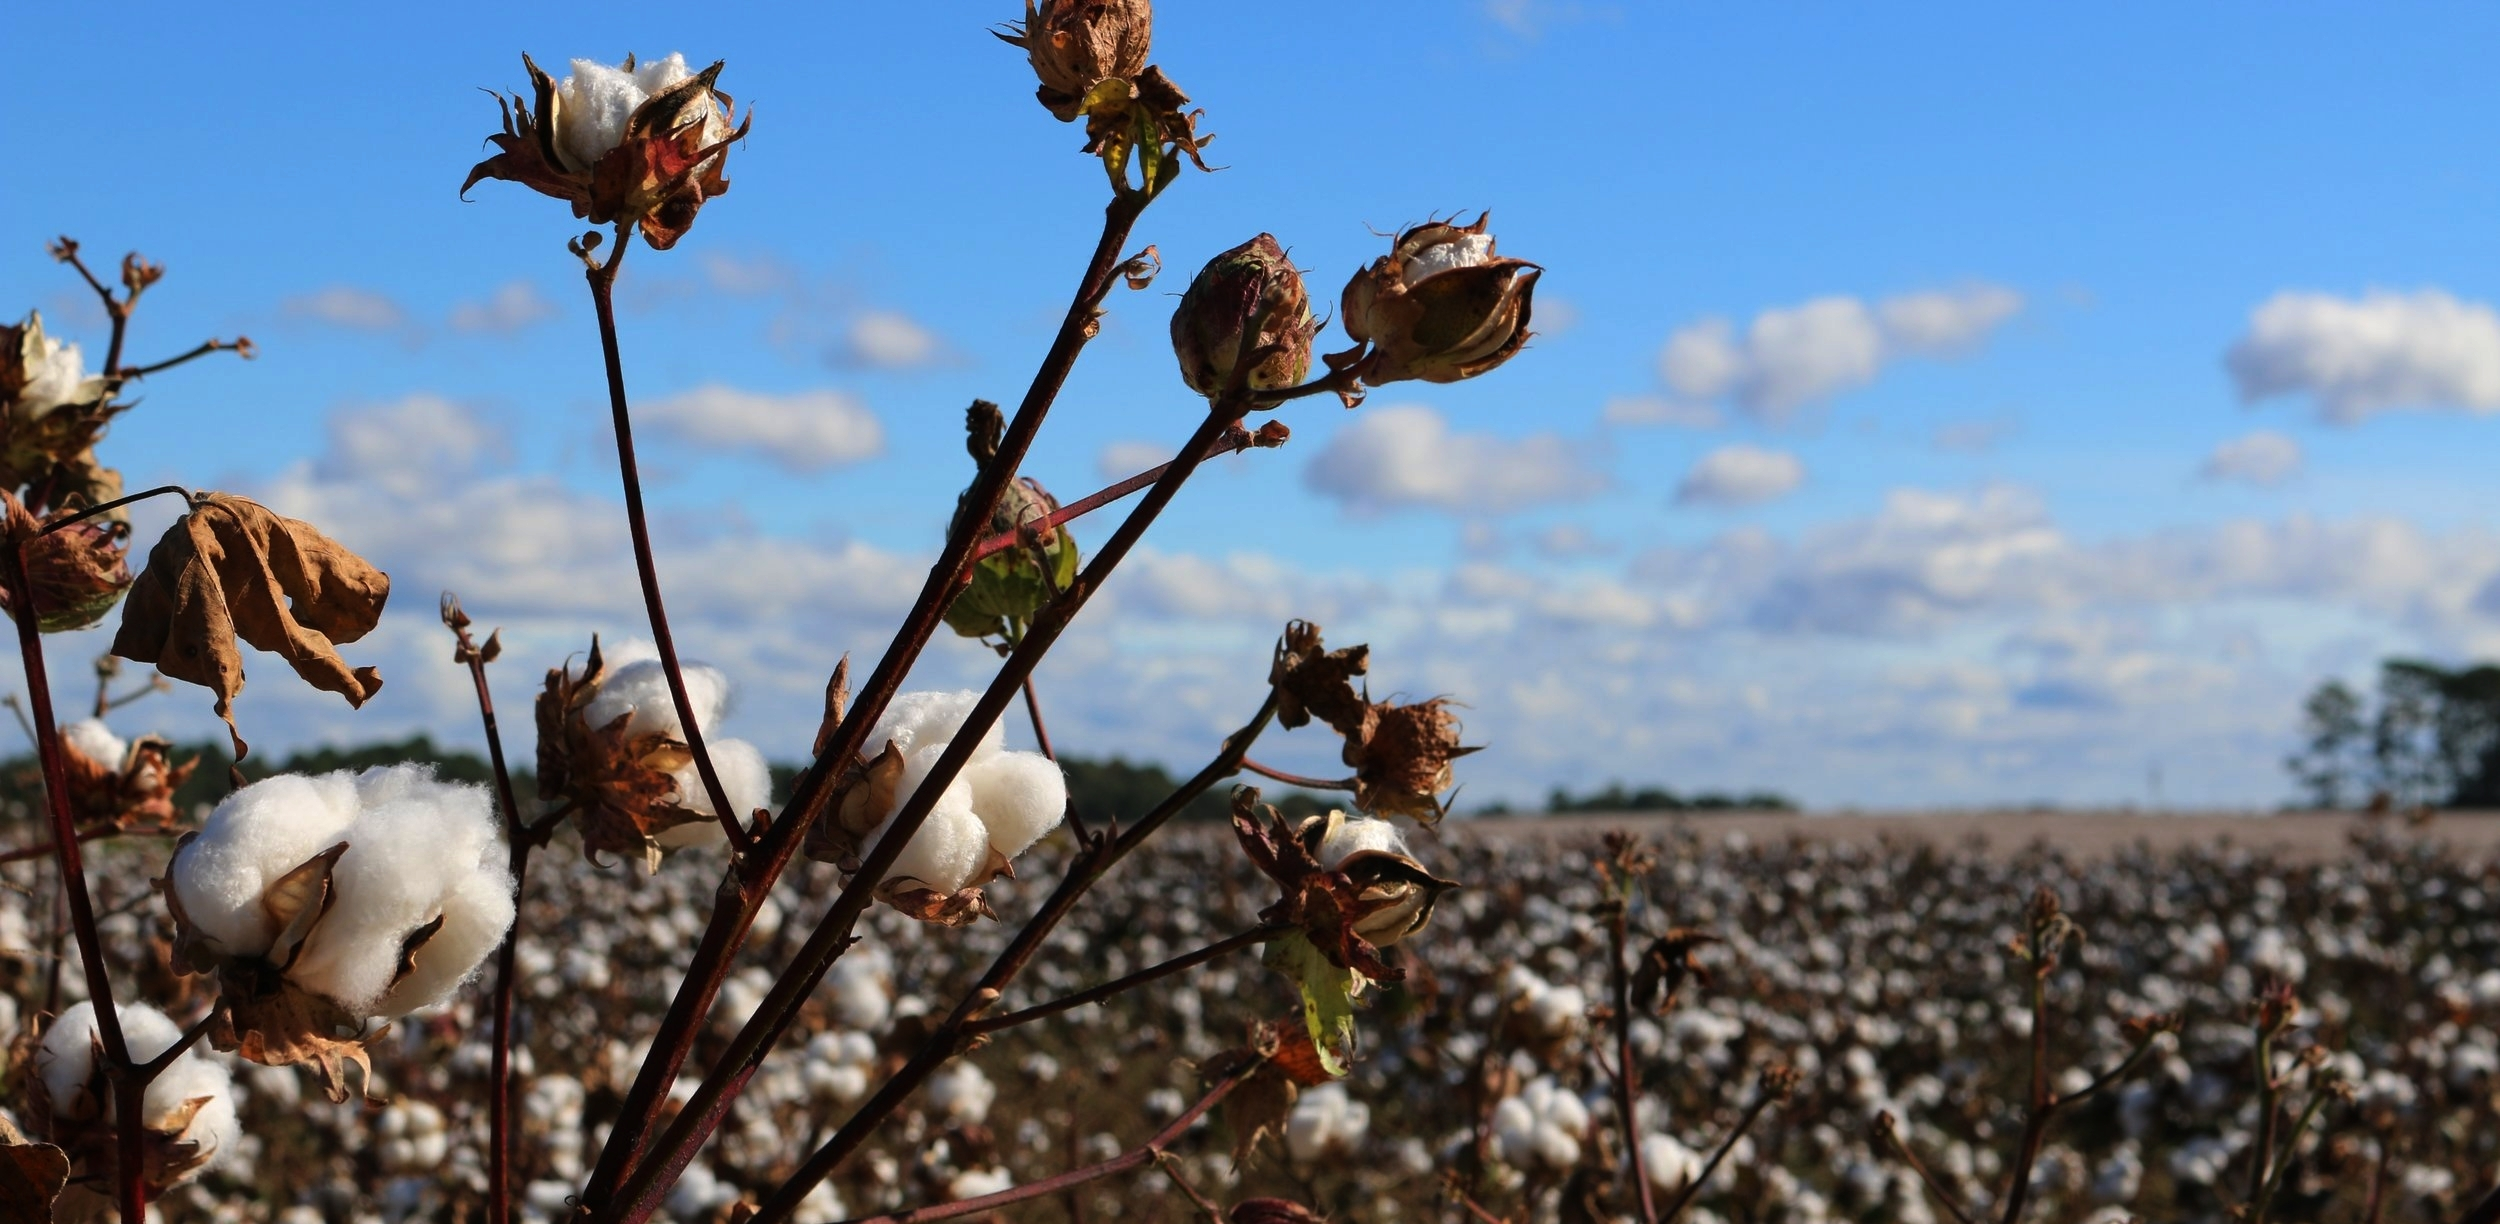 2.4% of theworld's croplandis planted with cotton,yet it accounts for24% of insecticides and11% of pesticides Globally. - - WWF